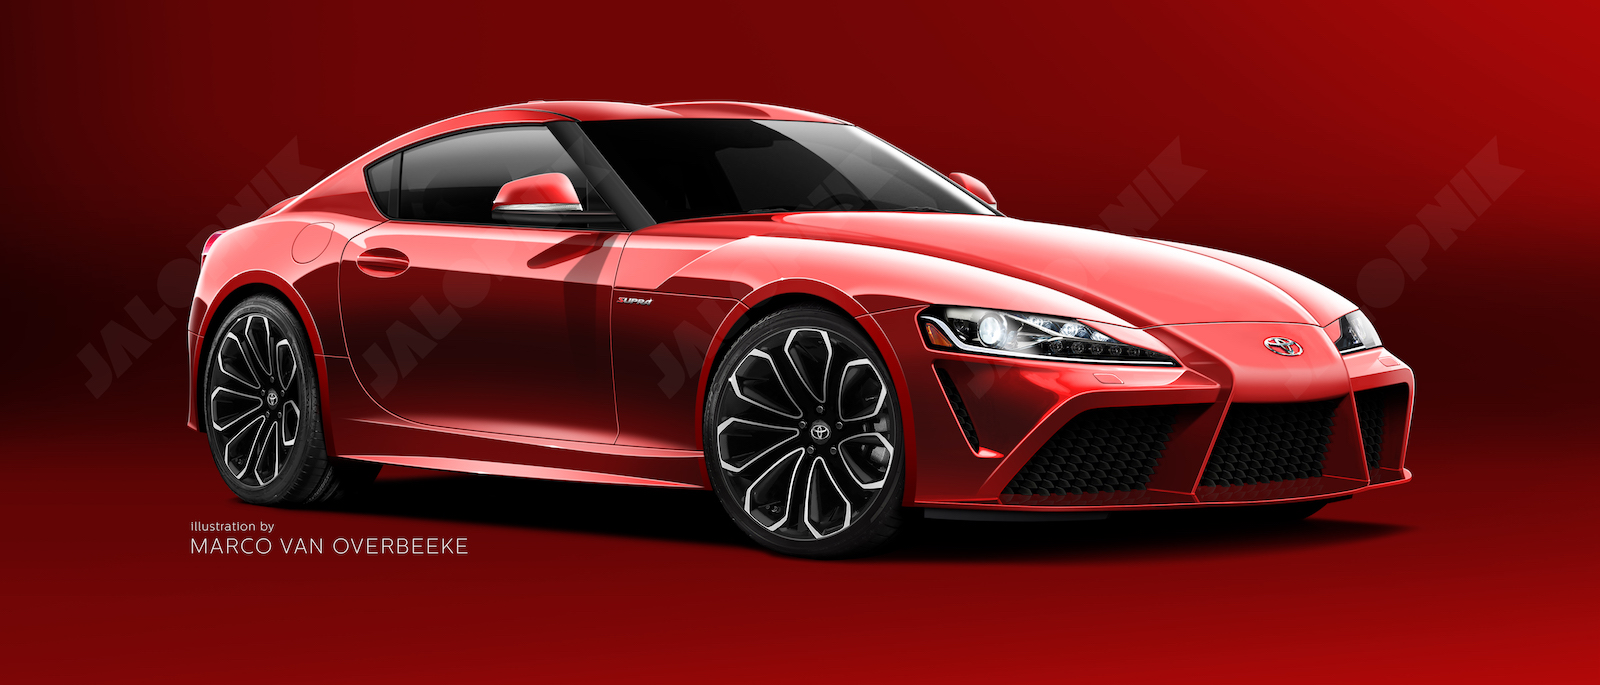 Jalopnik New Toyota Supra Rendering Based On Insider Info